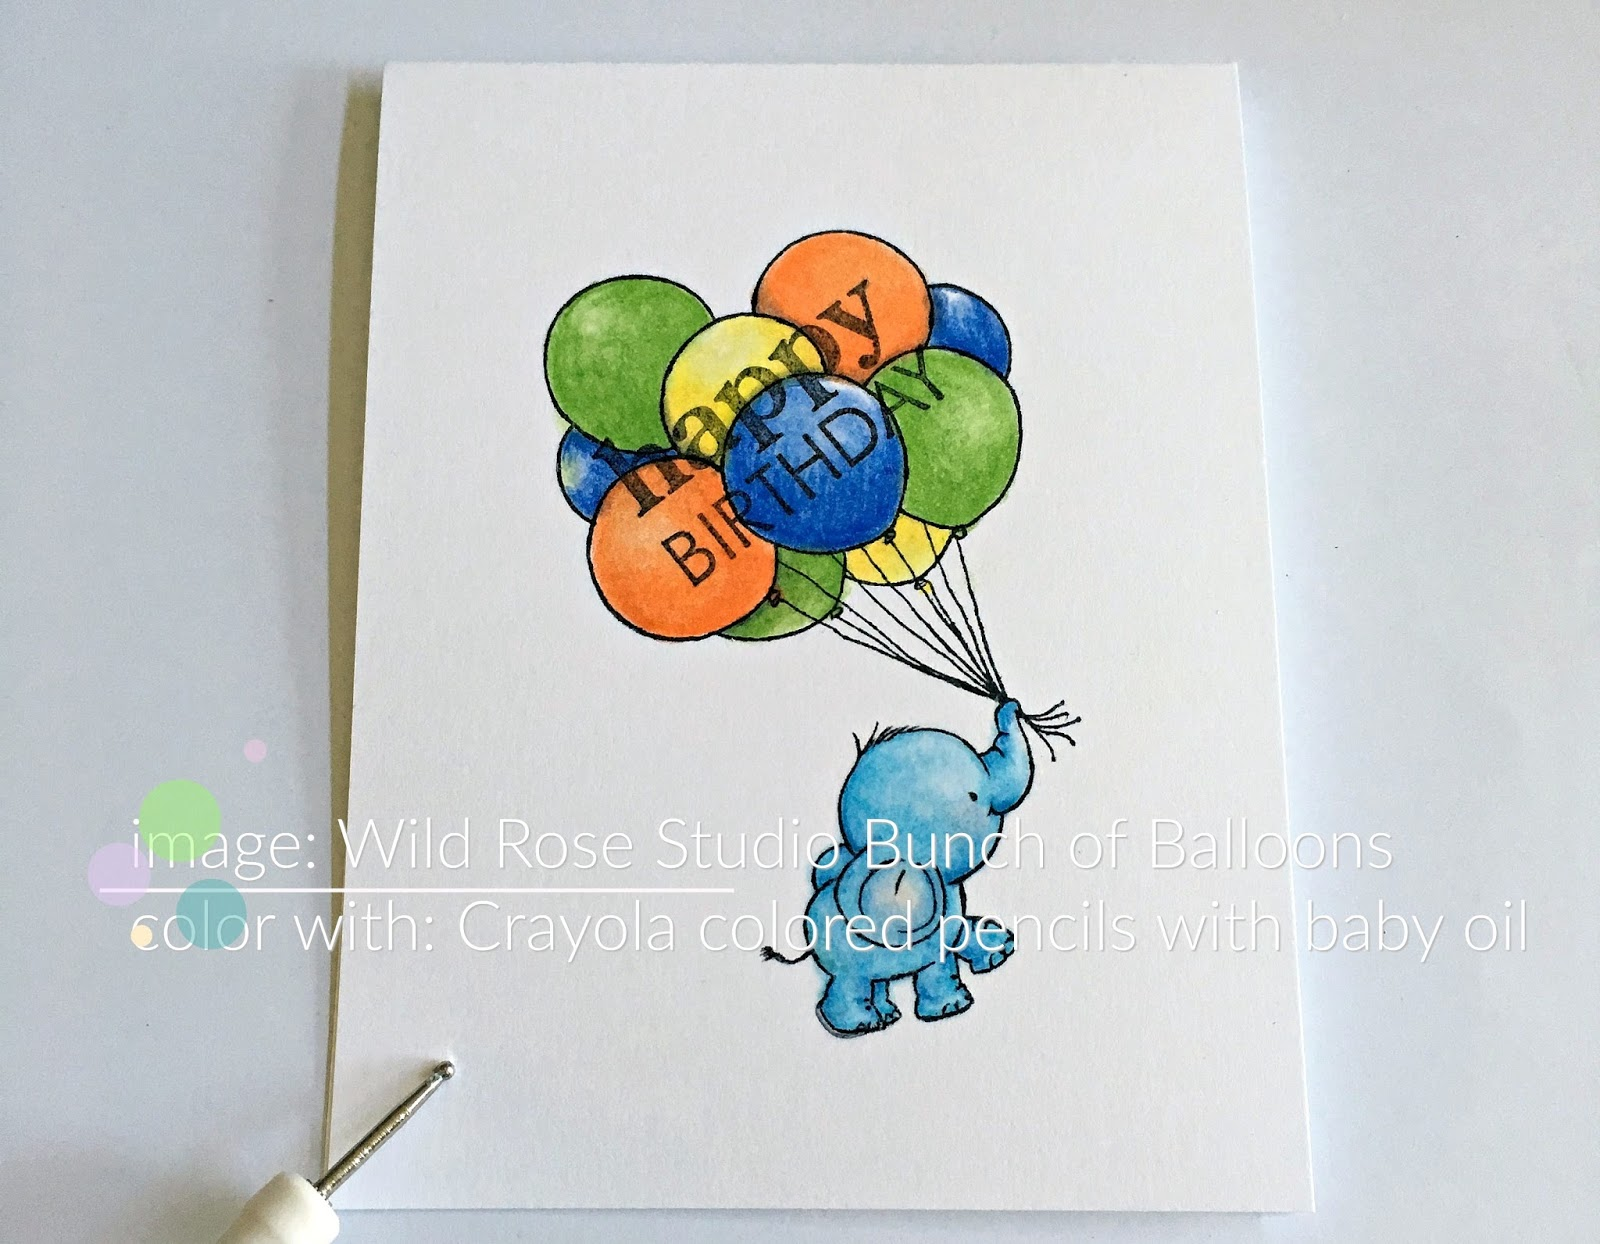 wild rose studio bunch of balloons